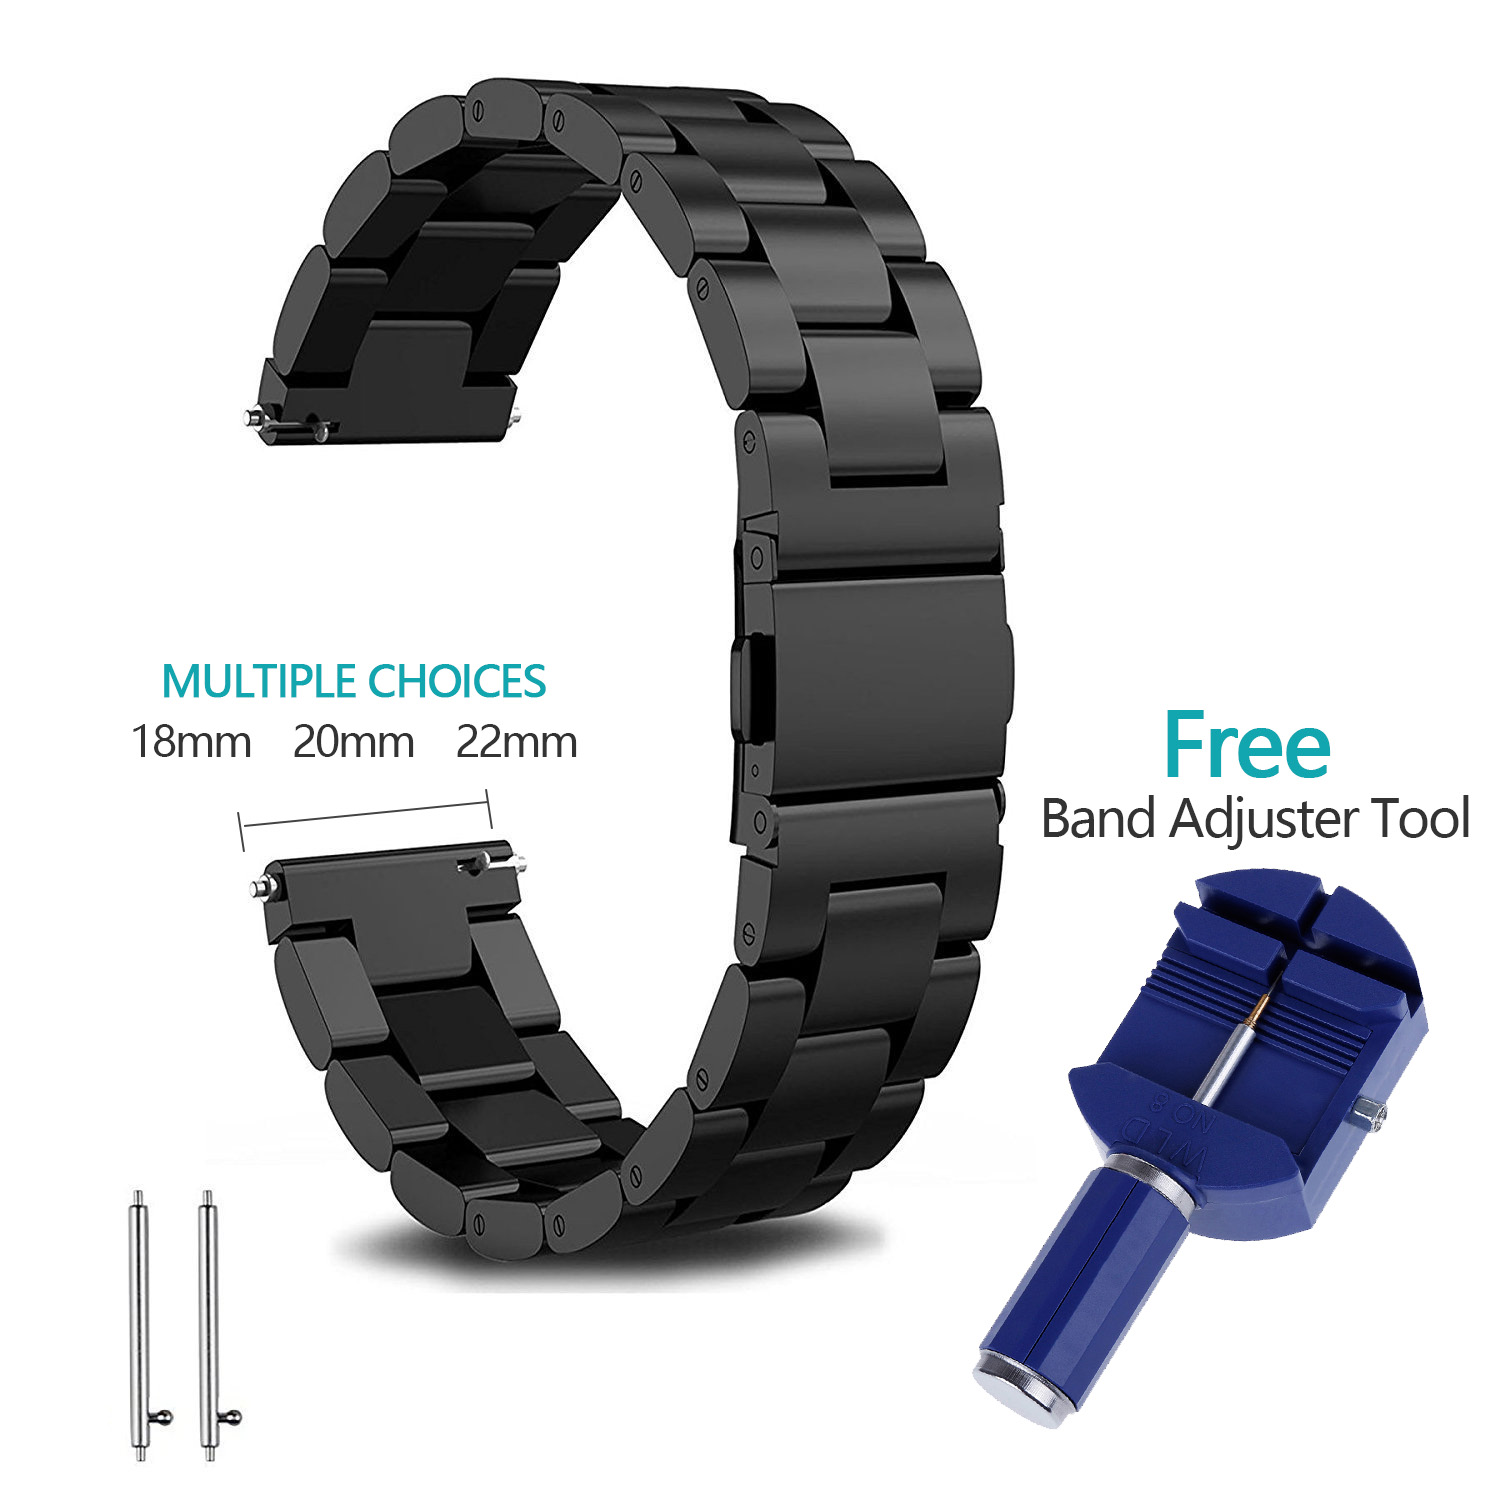 18mm 20mm 22mm Stainless Steel Watch Band Strap For Samsung Gear S2 S3 smart watch Link bracelet black for Samsung Gear S2 аксессуар ремешок samsung et srr72mlegru для gear s2 gear s2 sport black blue